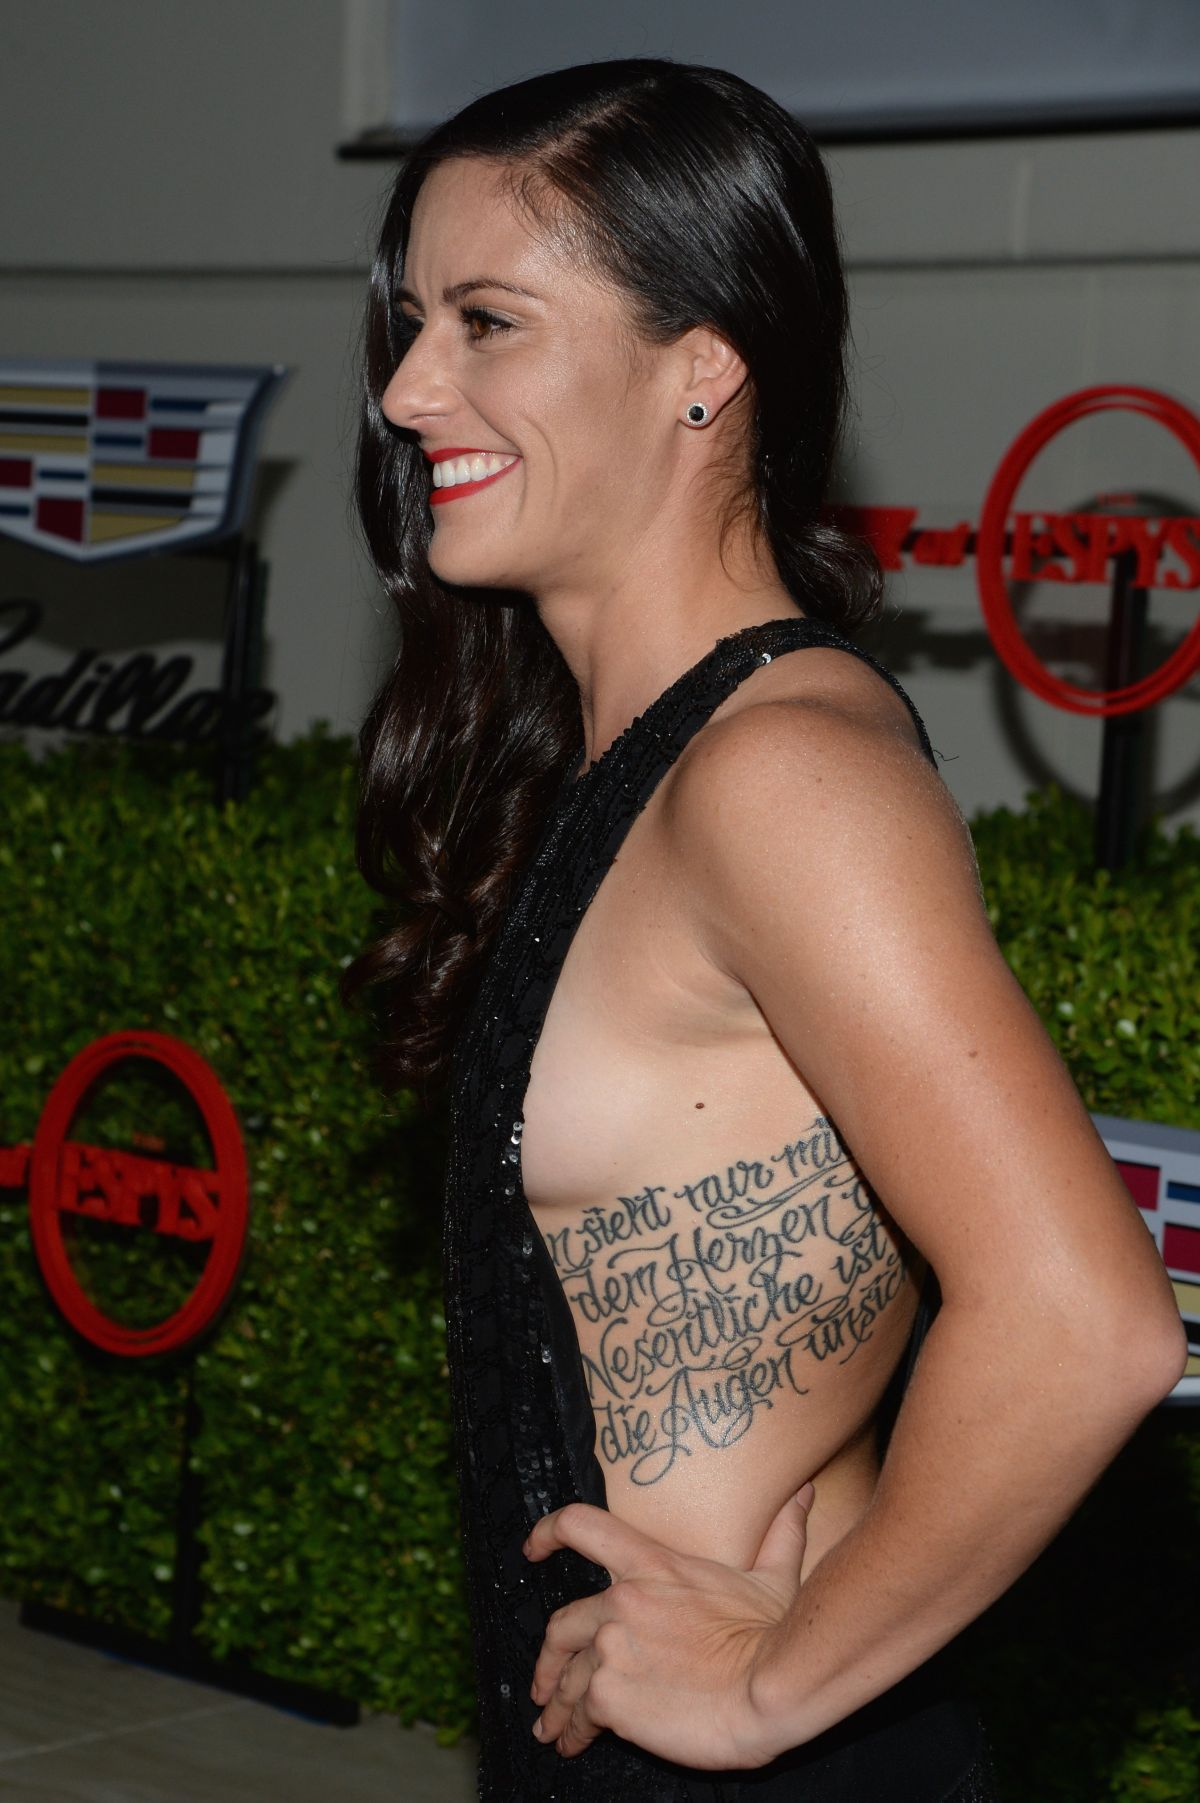 Nudes Ali Krieger nudes (68 photos), Topless, Bikini, Boobs, braless 2006